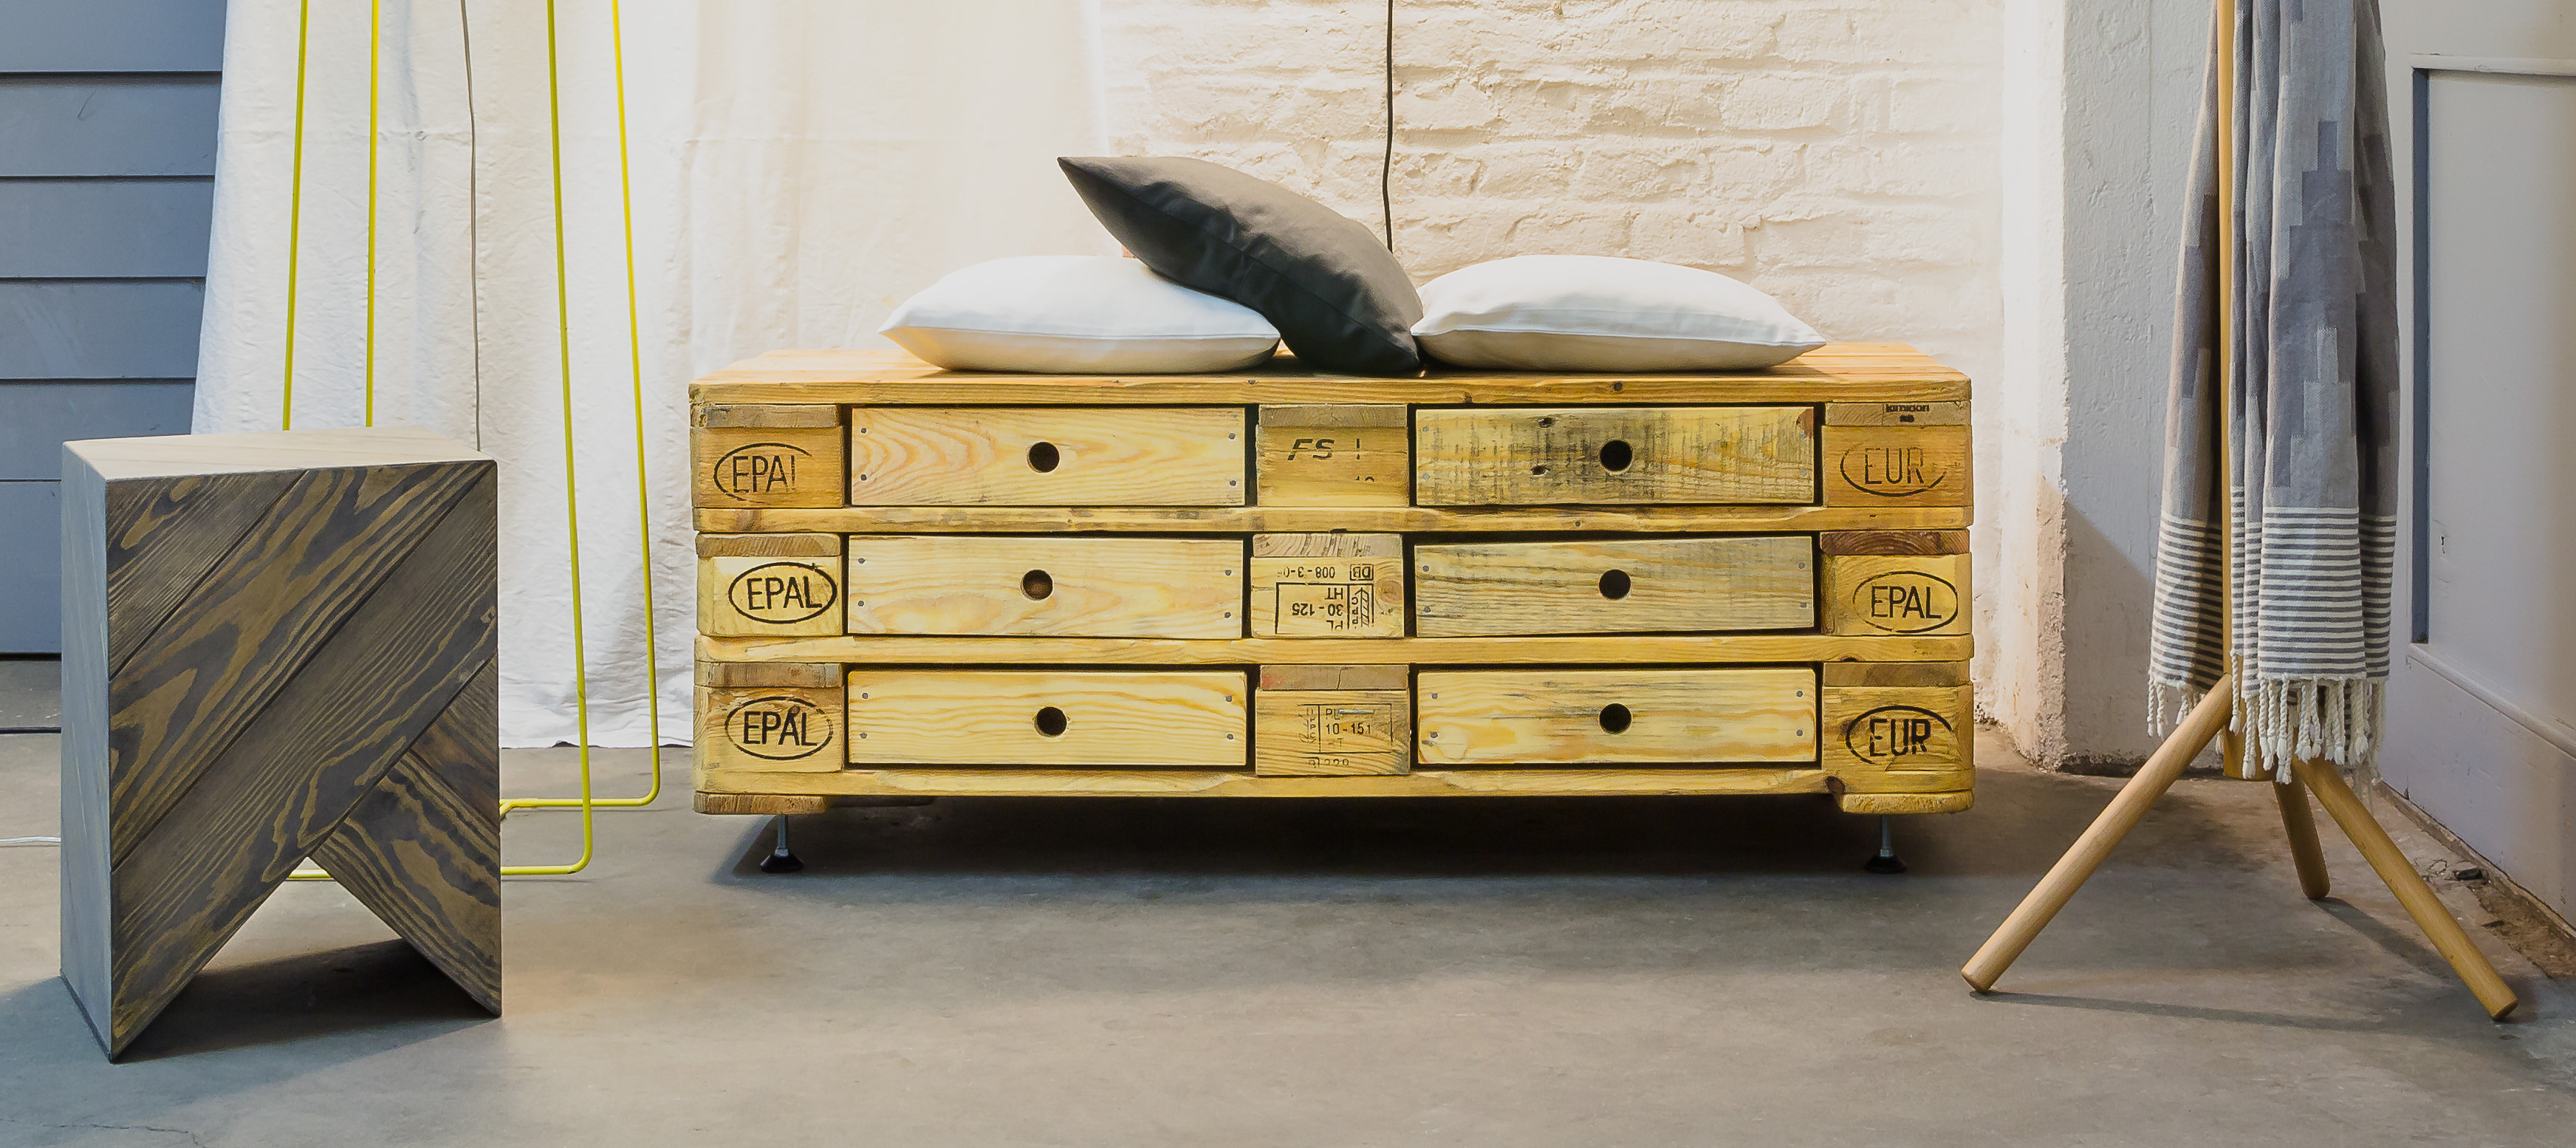 Pallet furniture for Banc en bois de palette